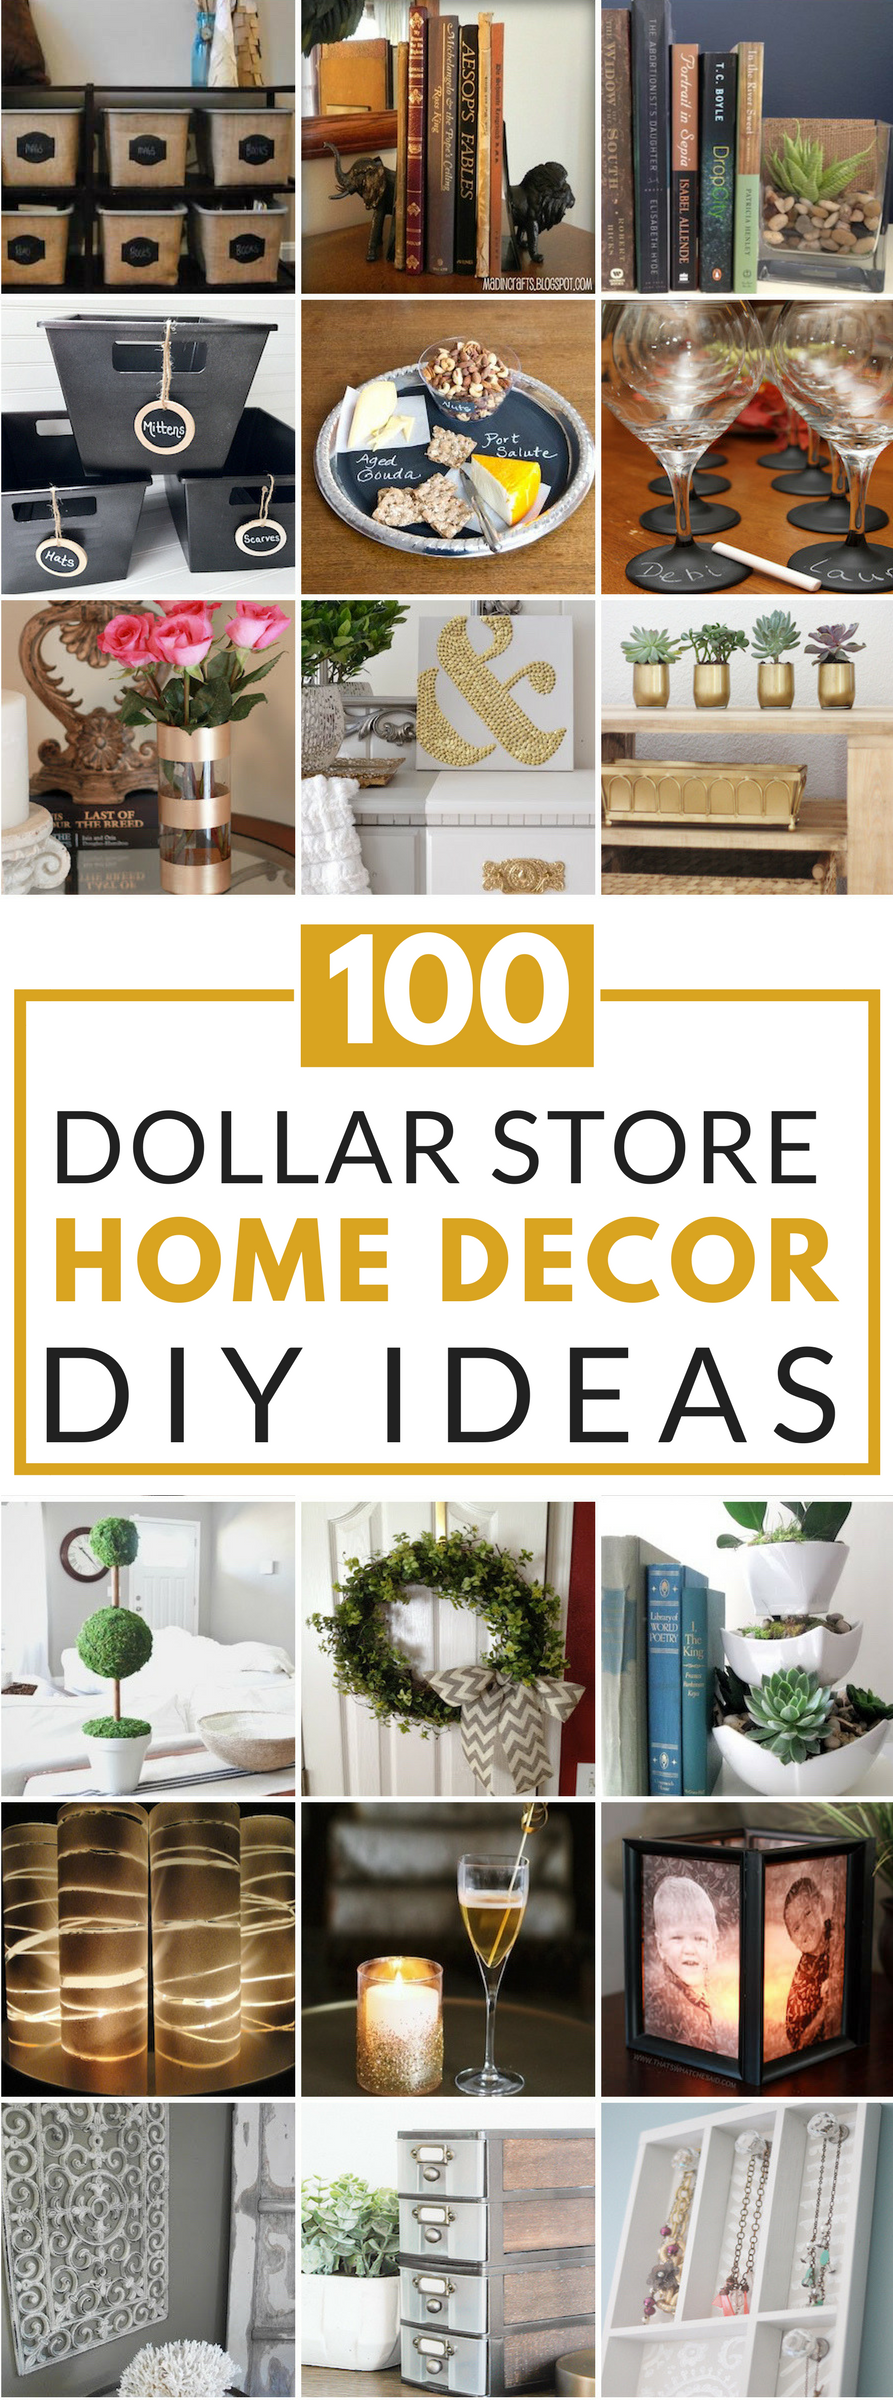 100 dollar store diy home decor ideas prudent penny pincher for Store for home decor